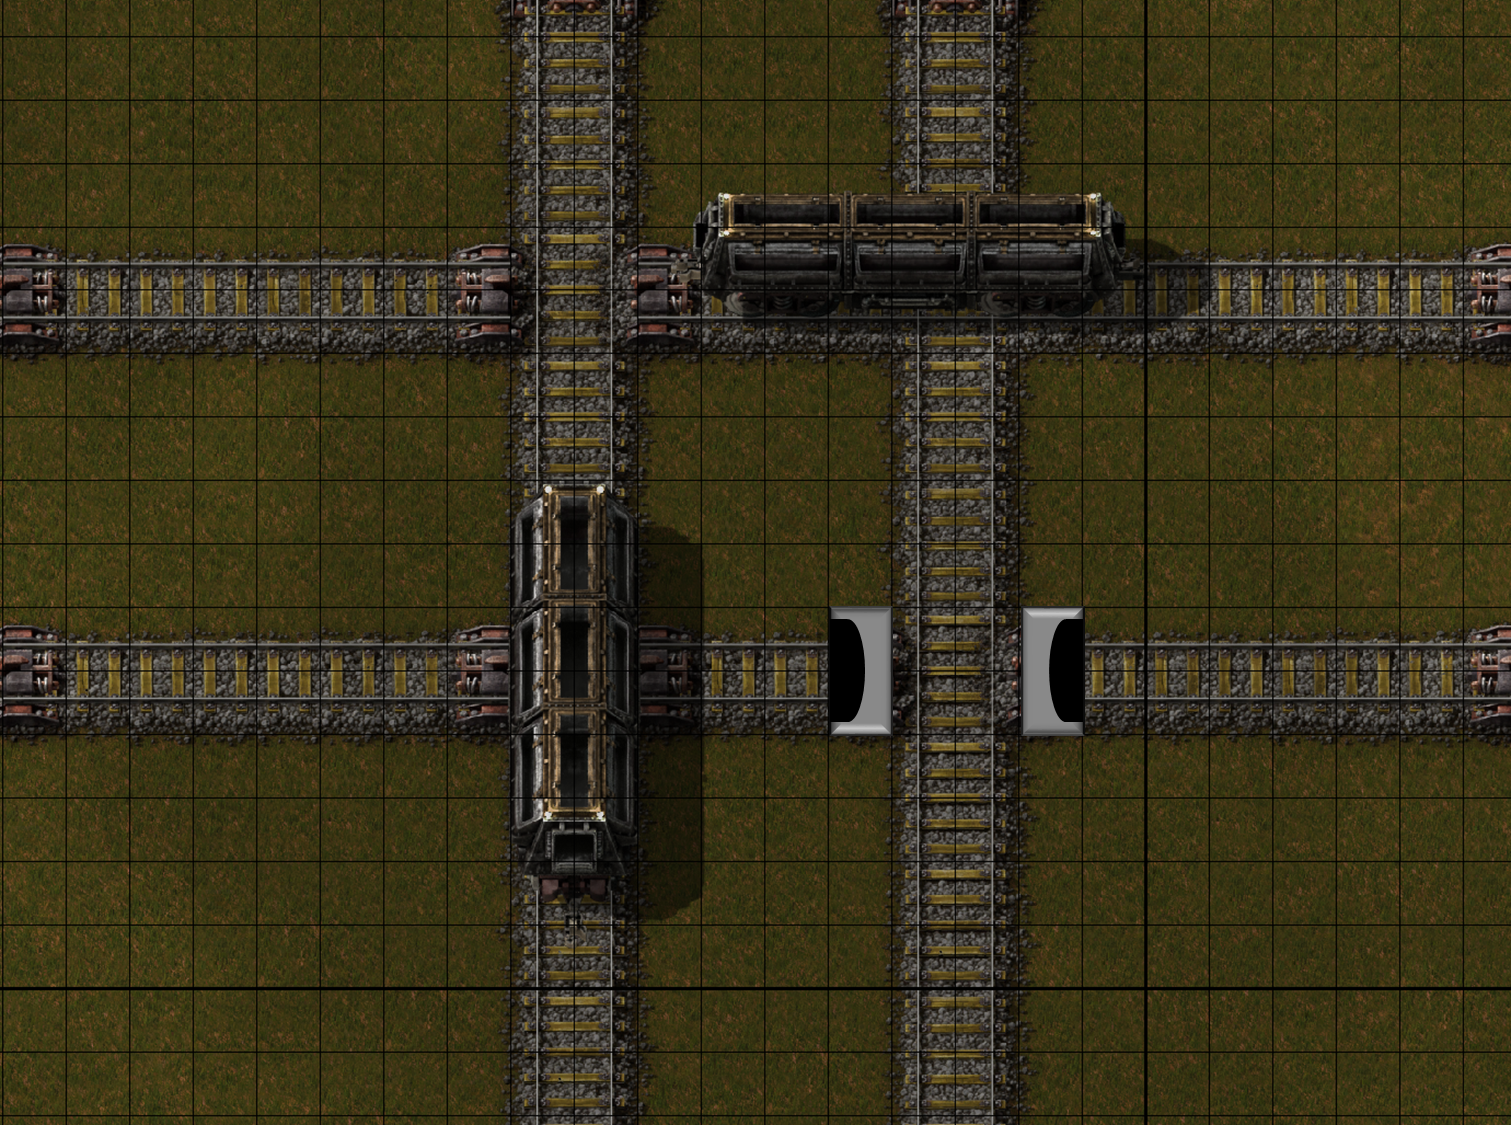 Traintunnel.jpg.png